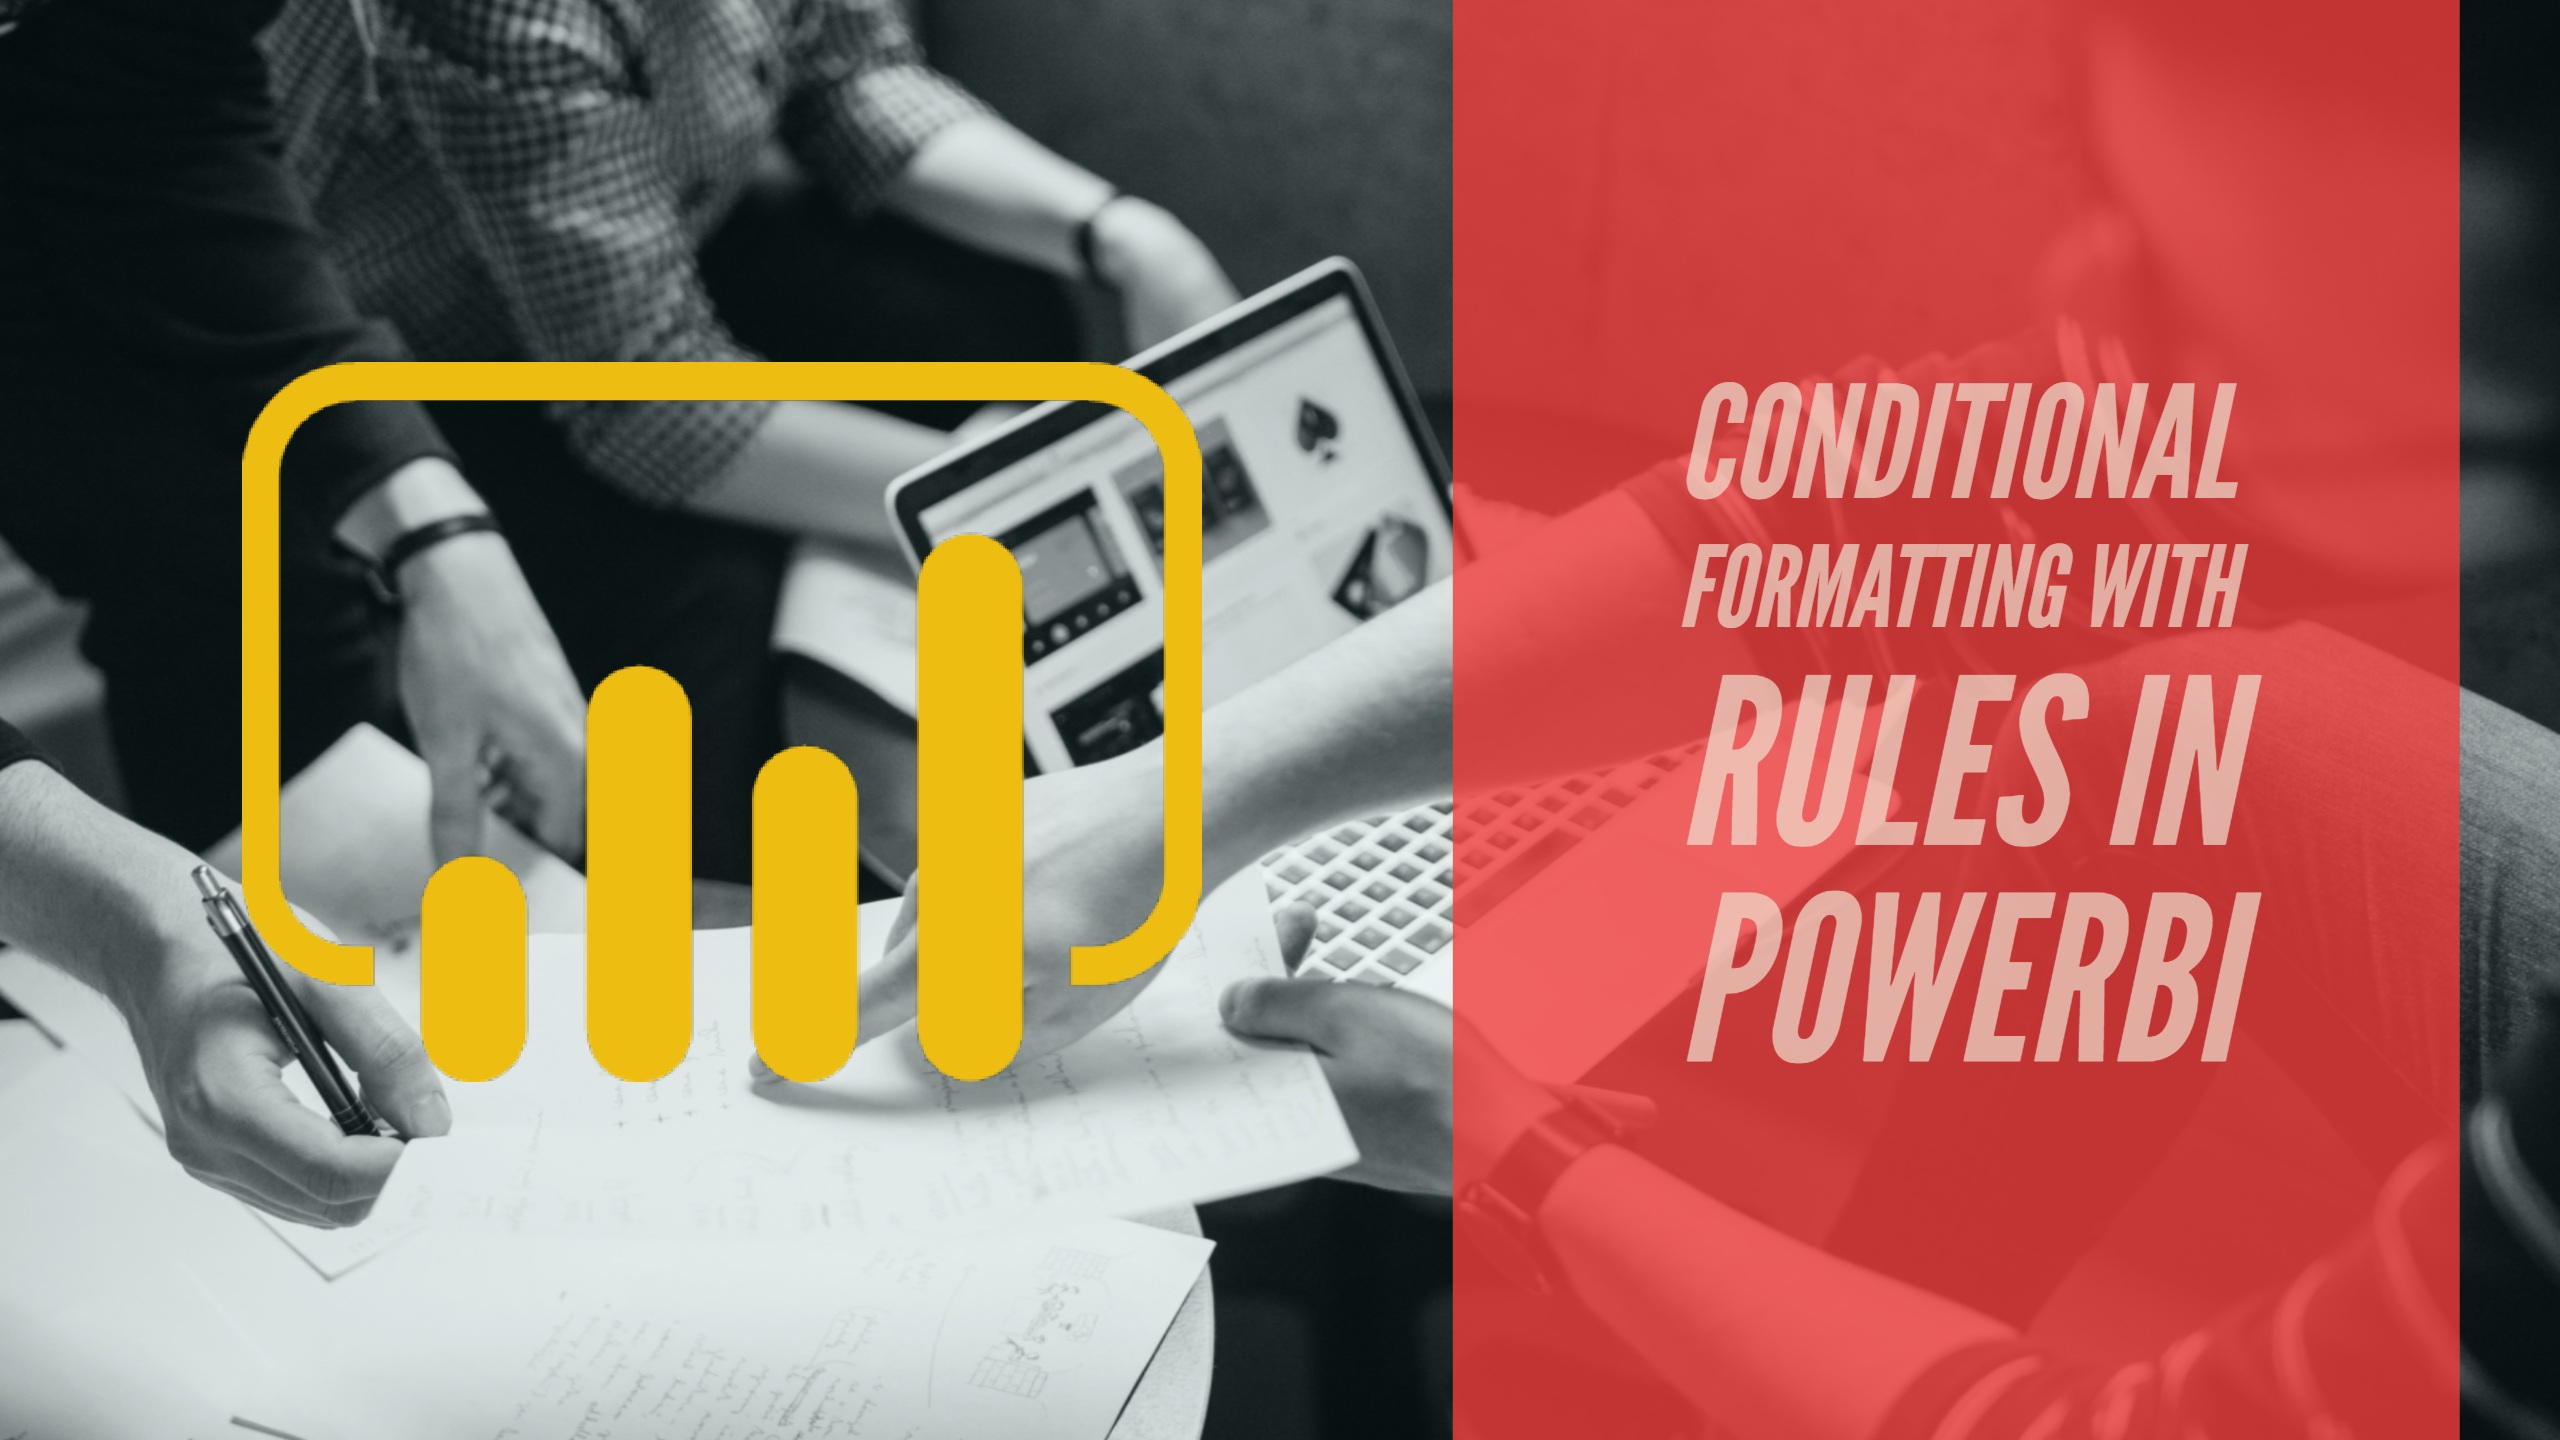 Conditional Formatting In Power BI with Rules